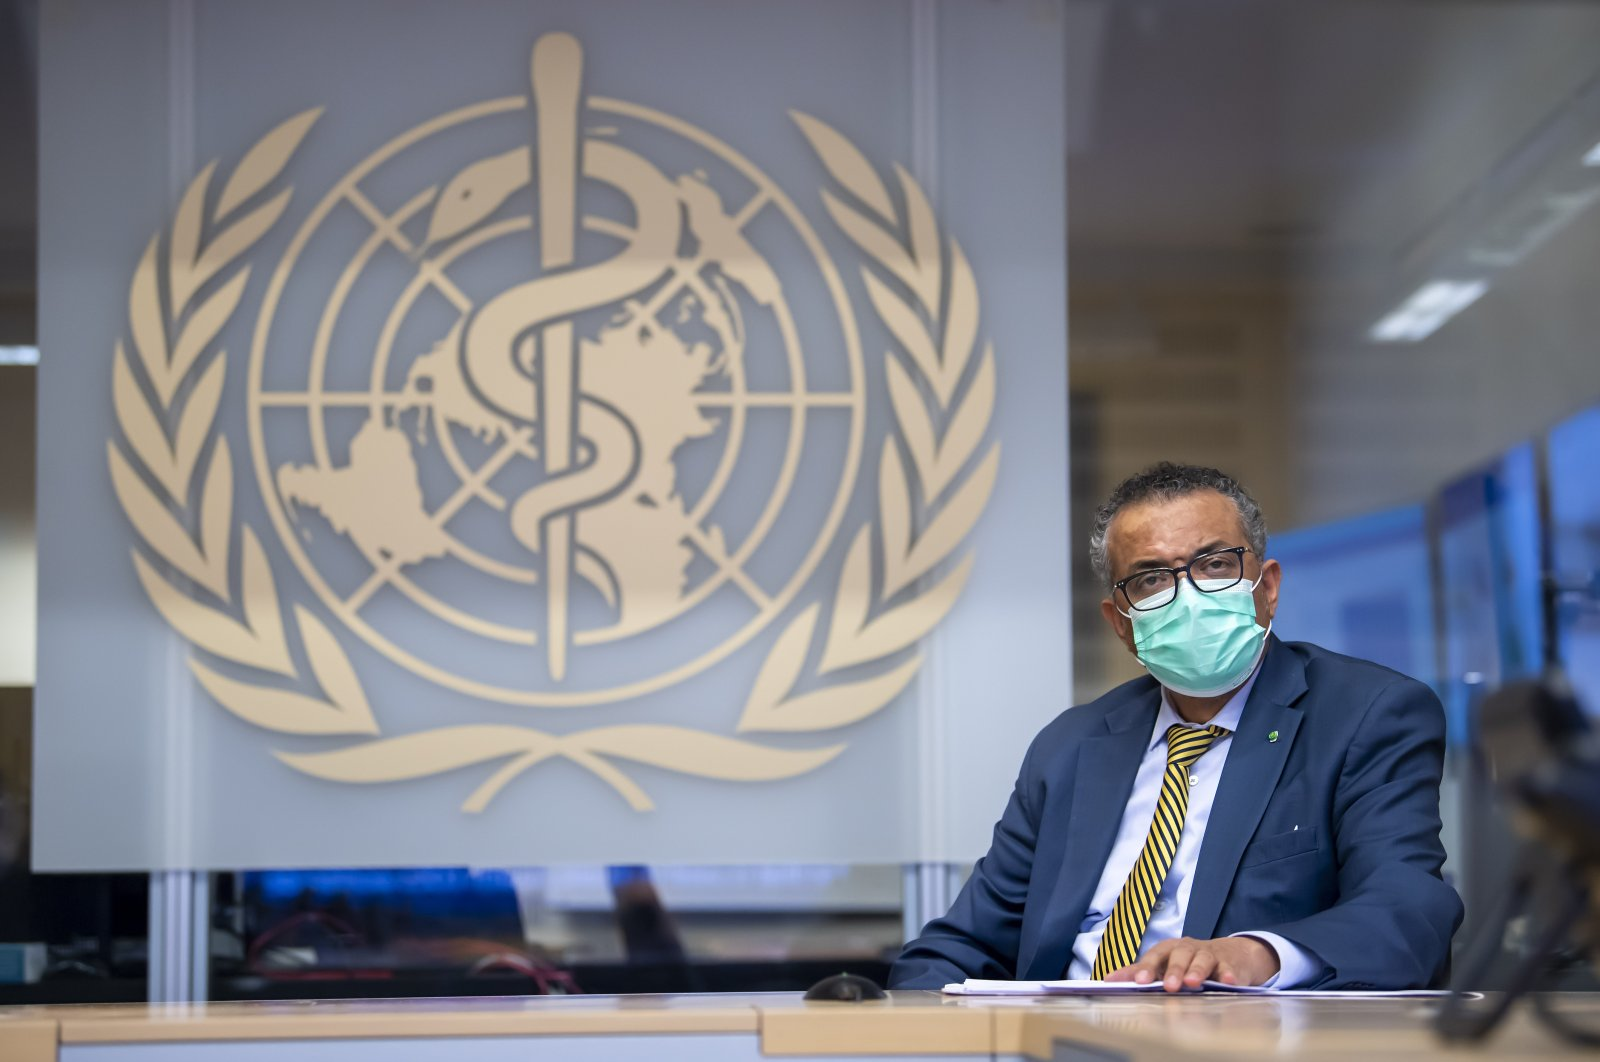 Tedros Adhanom Ghebreyesus, director-general of the World Health Organization (WHO), speaks during a visit of the Presidents of the Swiss Federal Chambers, at WHO headquarters in Geneva, Switzerland, Oct. 15, 2020. (EPA Photo)